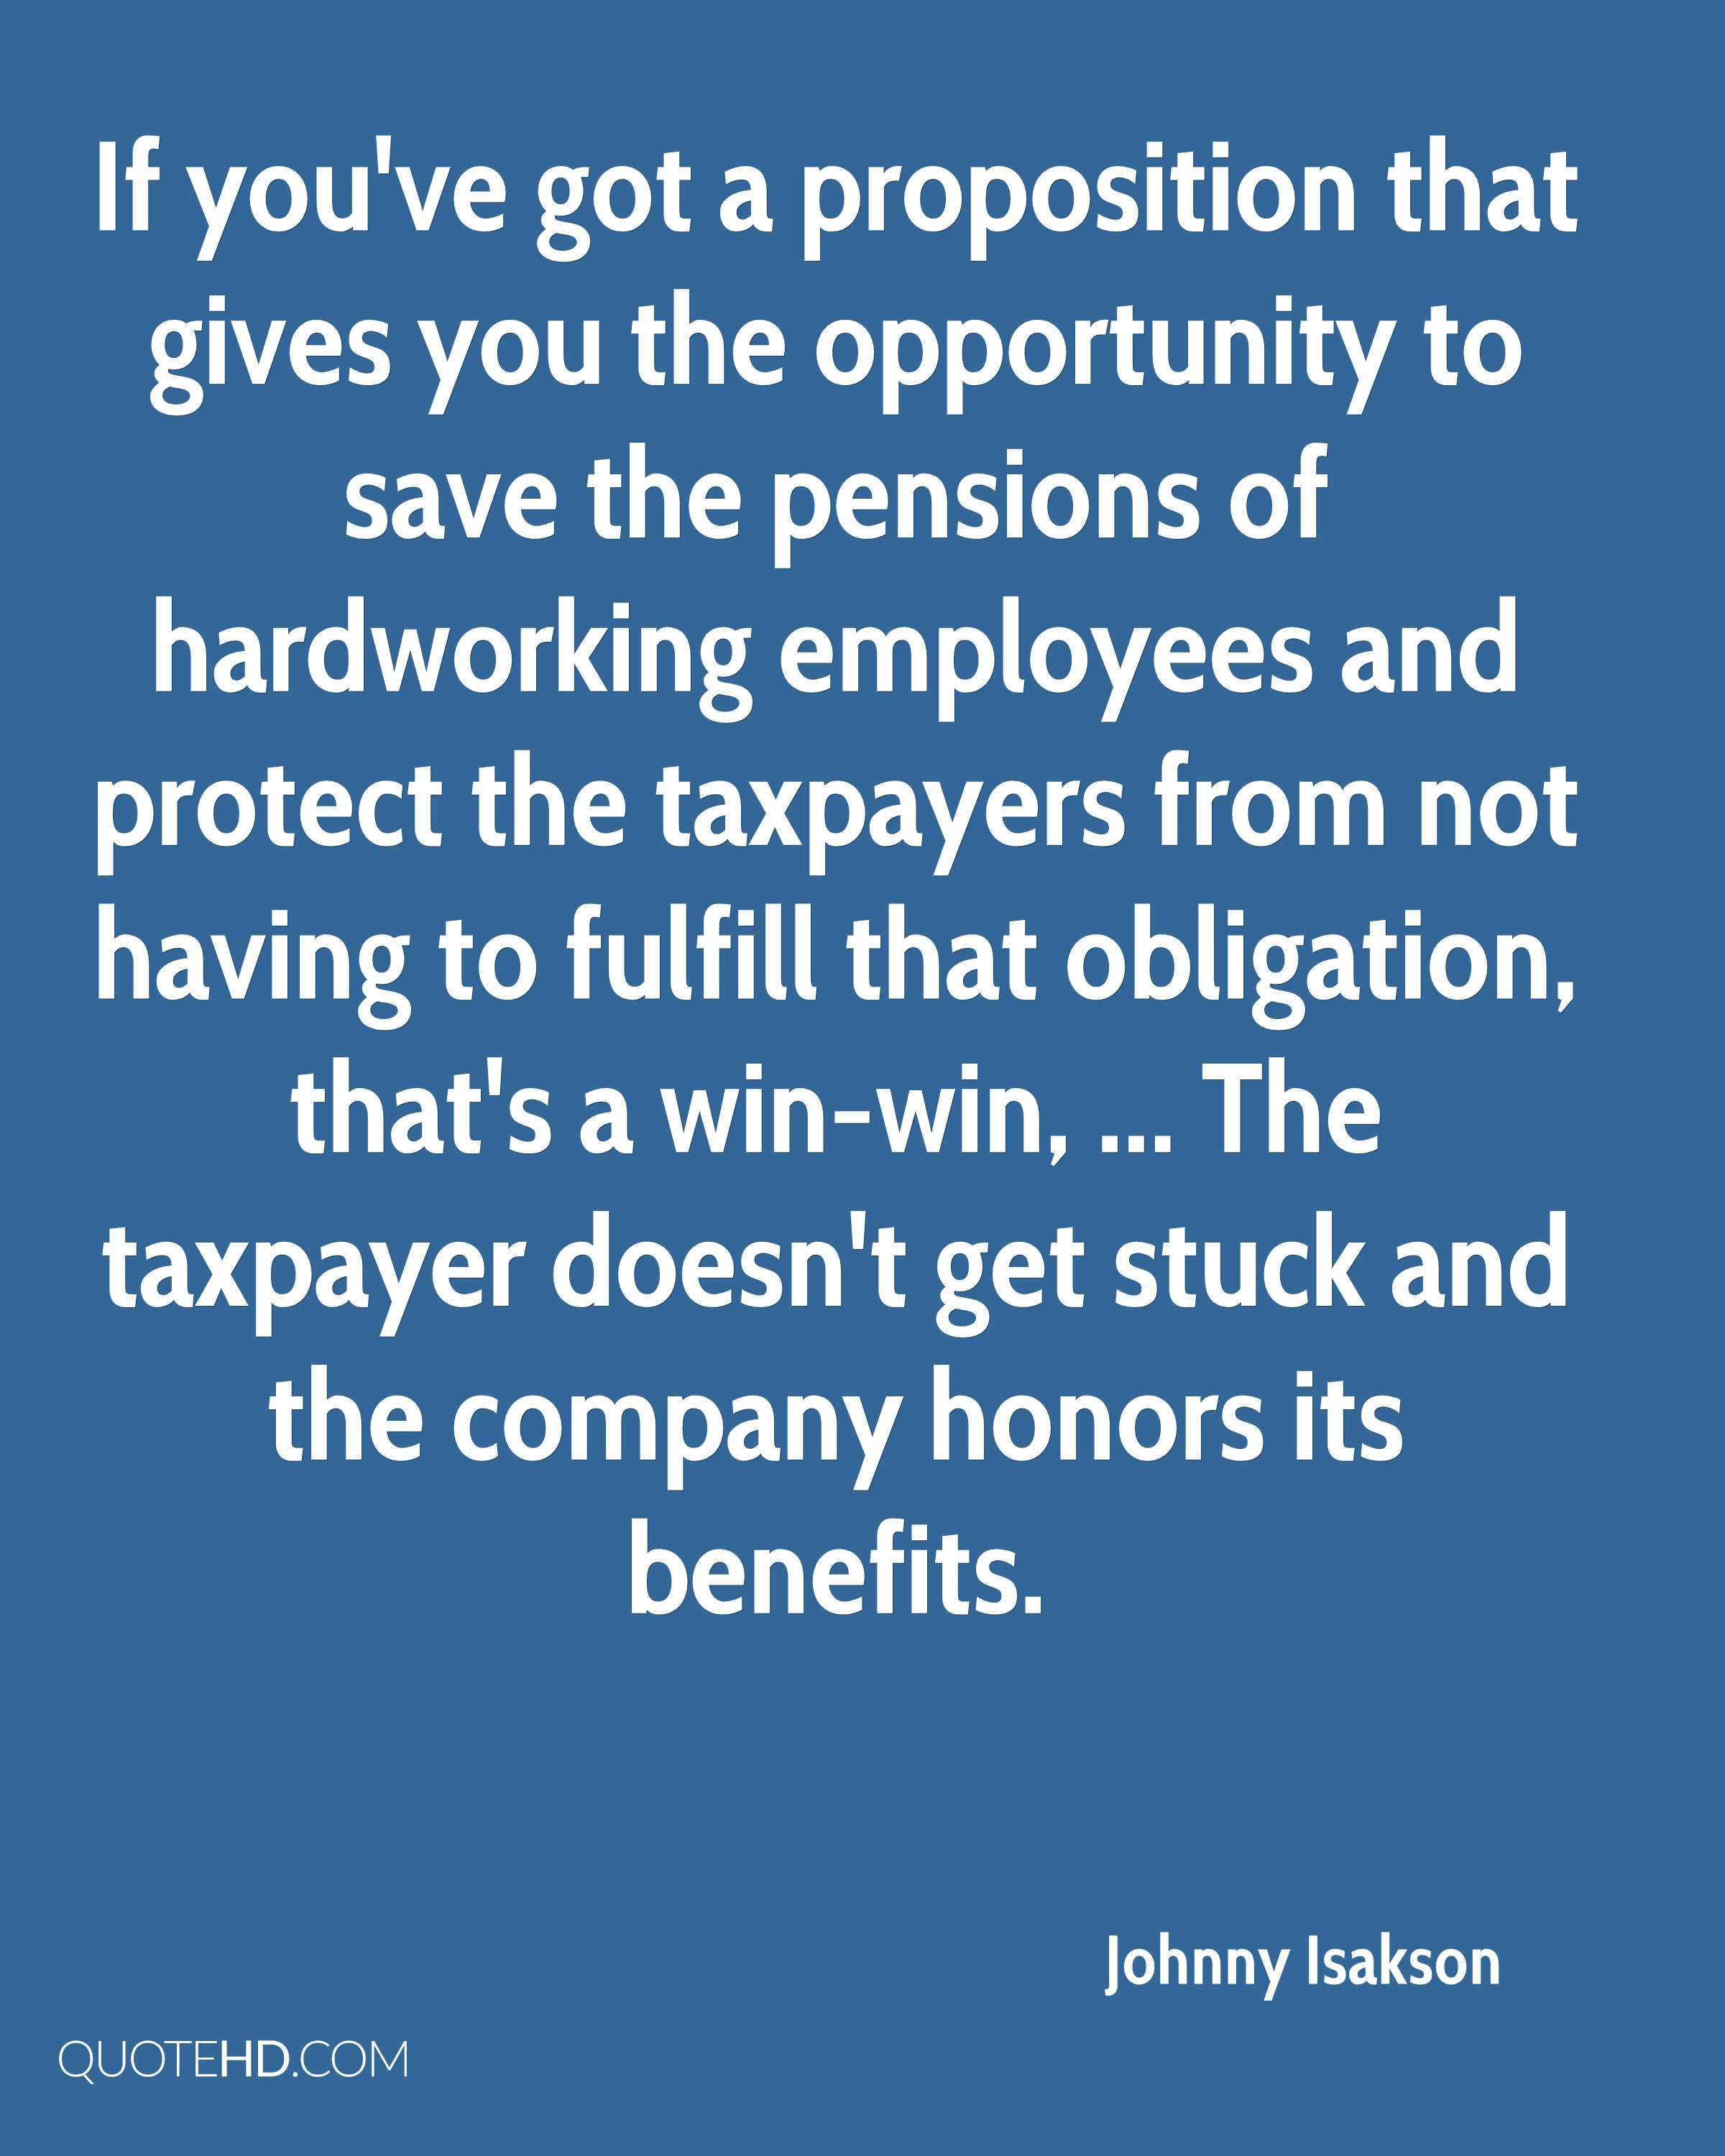 If you've got a proposition that gives you the opportunity to save the pensions of hardworking employees and protect the taxpayers from not having to fulfill that obligation, that's a win-win, ... The taxpayer doesn't get stuck and the company honors its benefits.